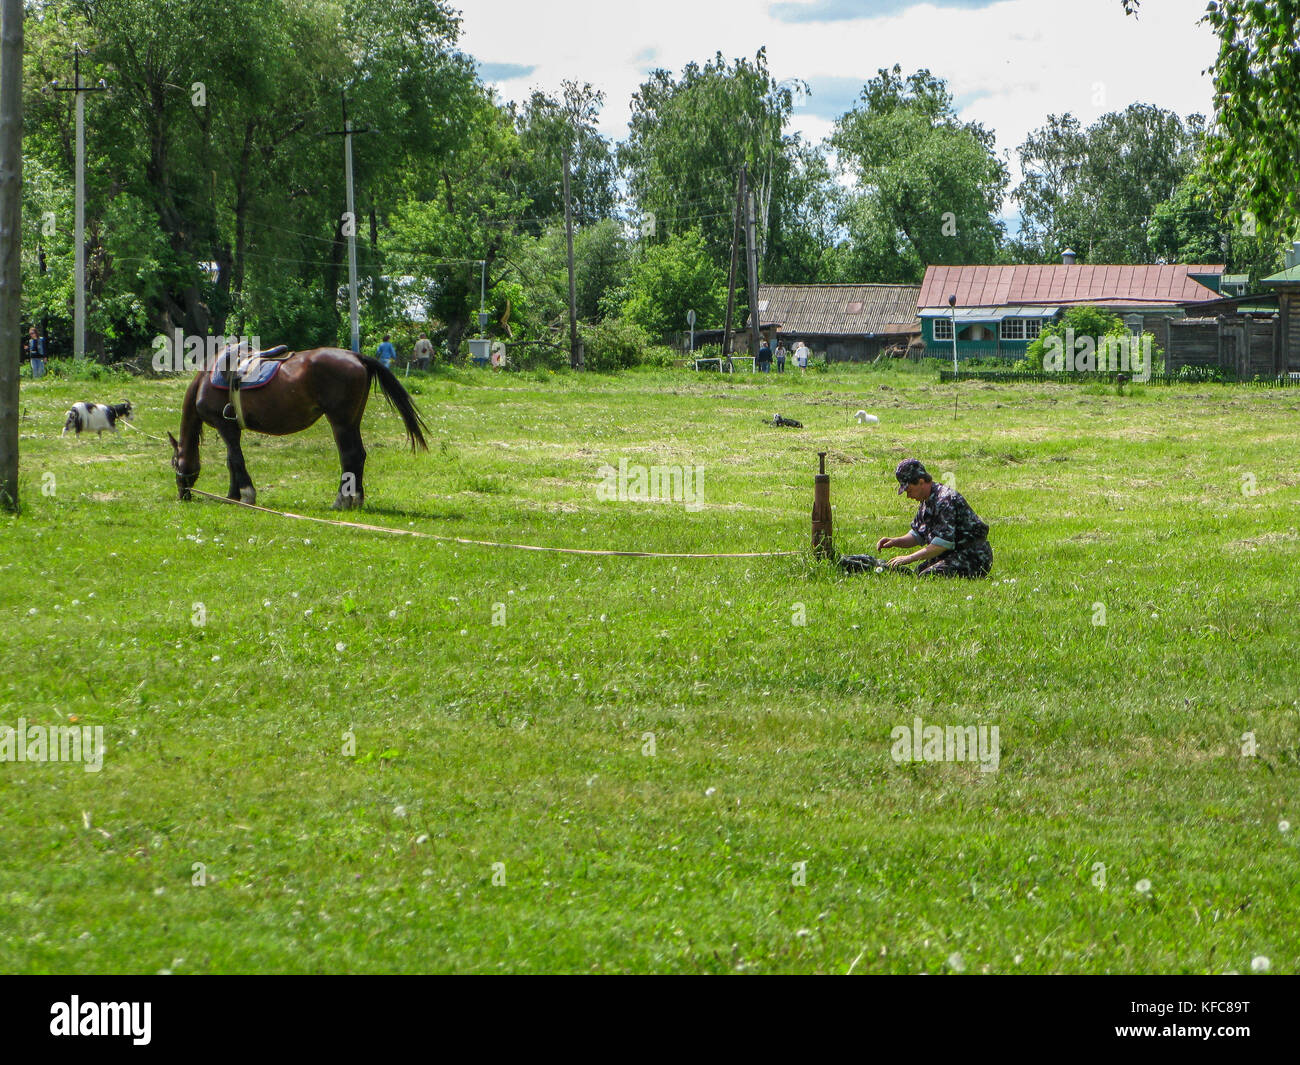 Horse rider ties a horse to rest on a green field. - Stock Image